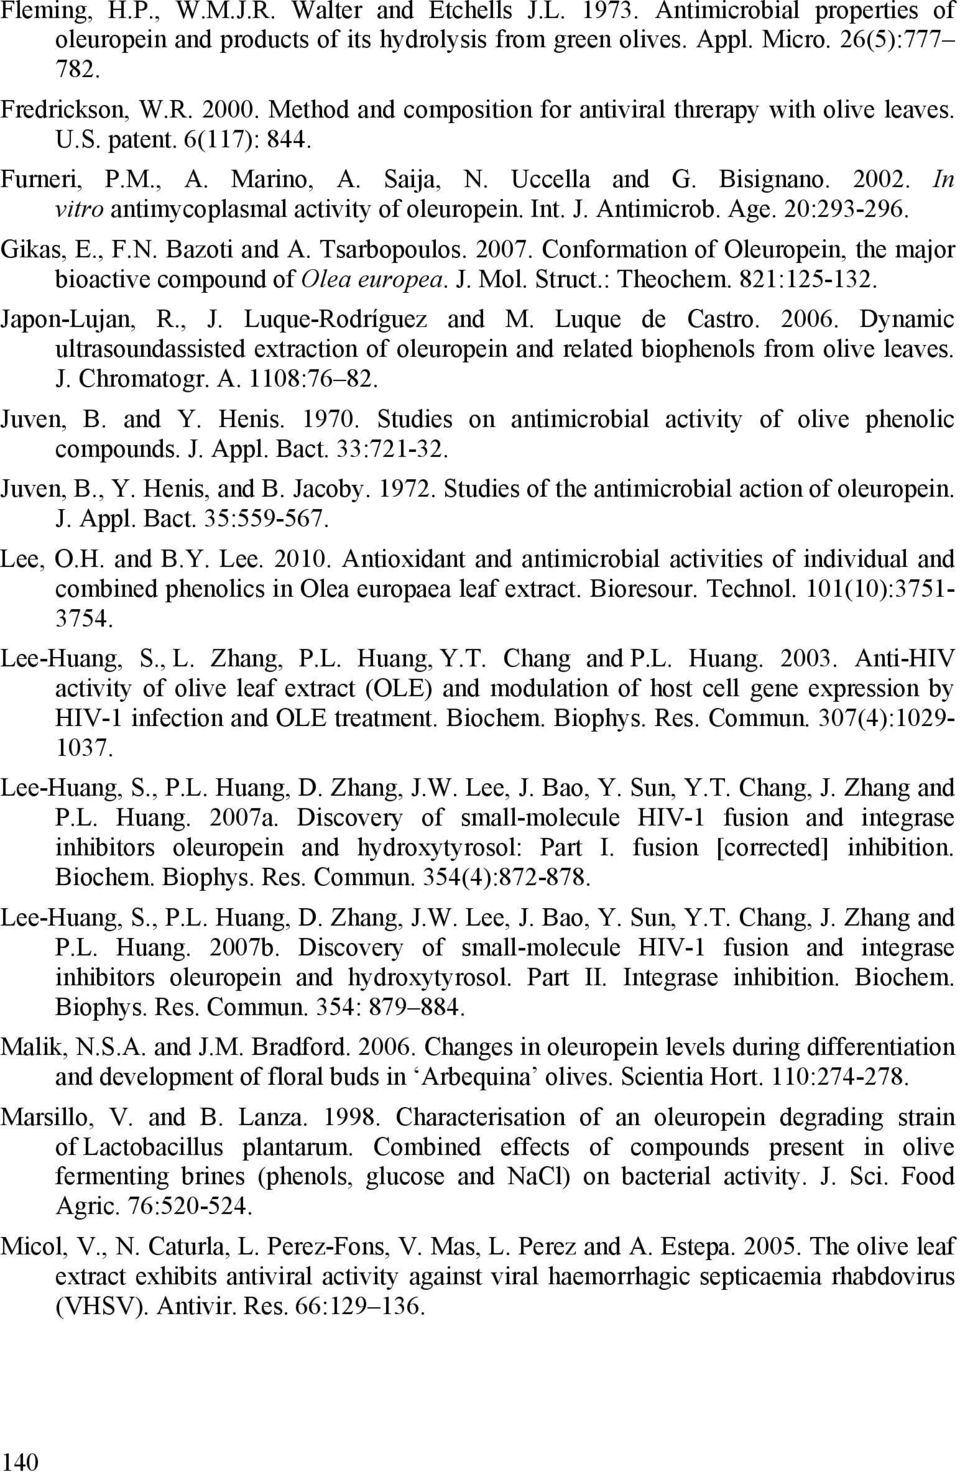 In vitro antimycoplasmal activity of oleuropein. Int. J. Antimicrob. Age. 20:293-296. Gikas, E., F.N. Bazoti and A. Tsarbopoulos. 2007.